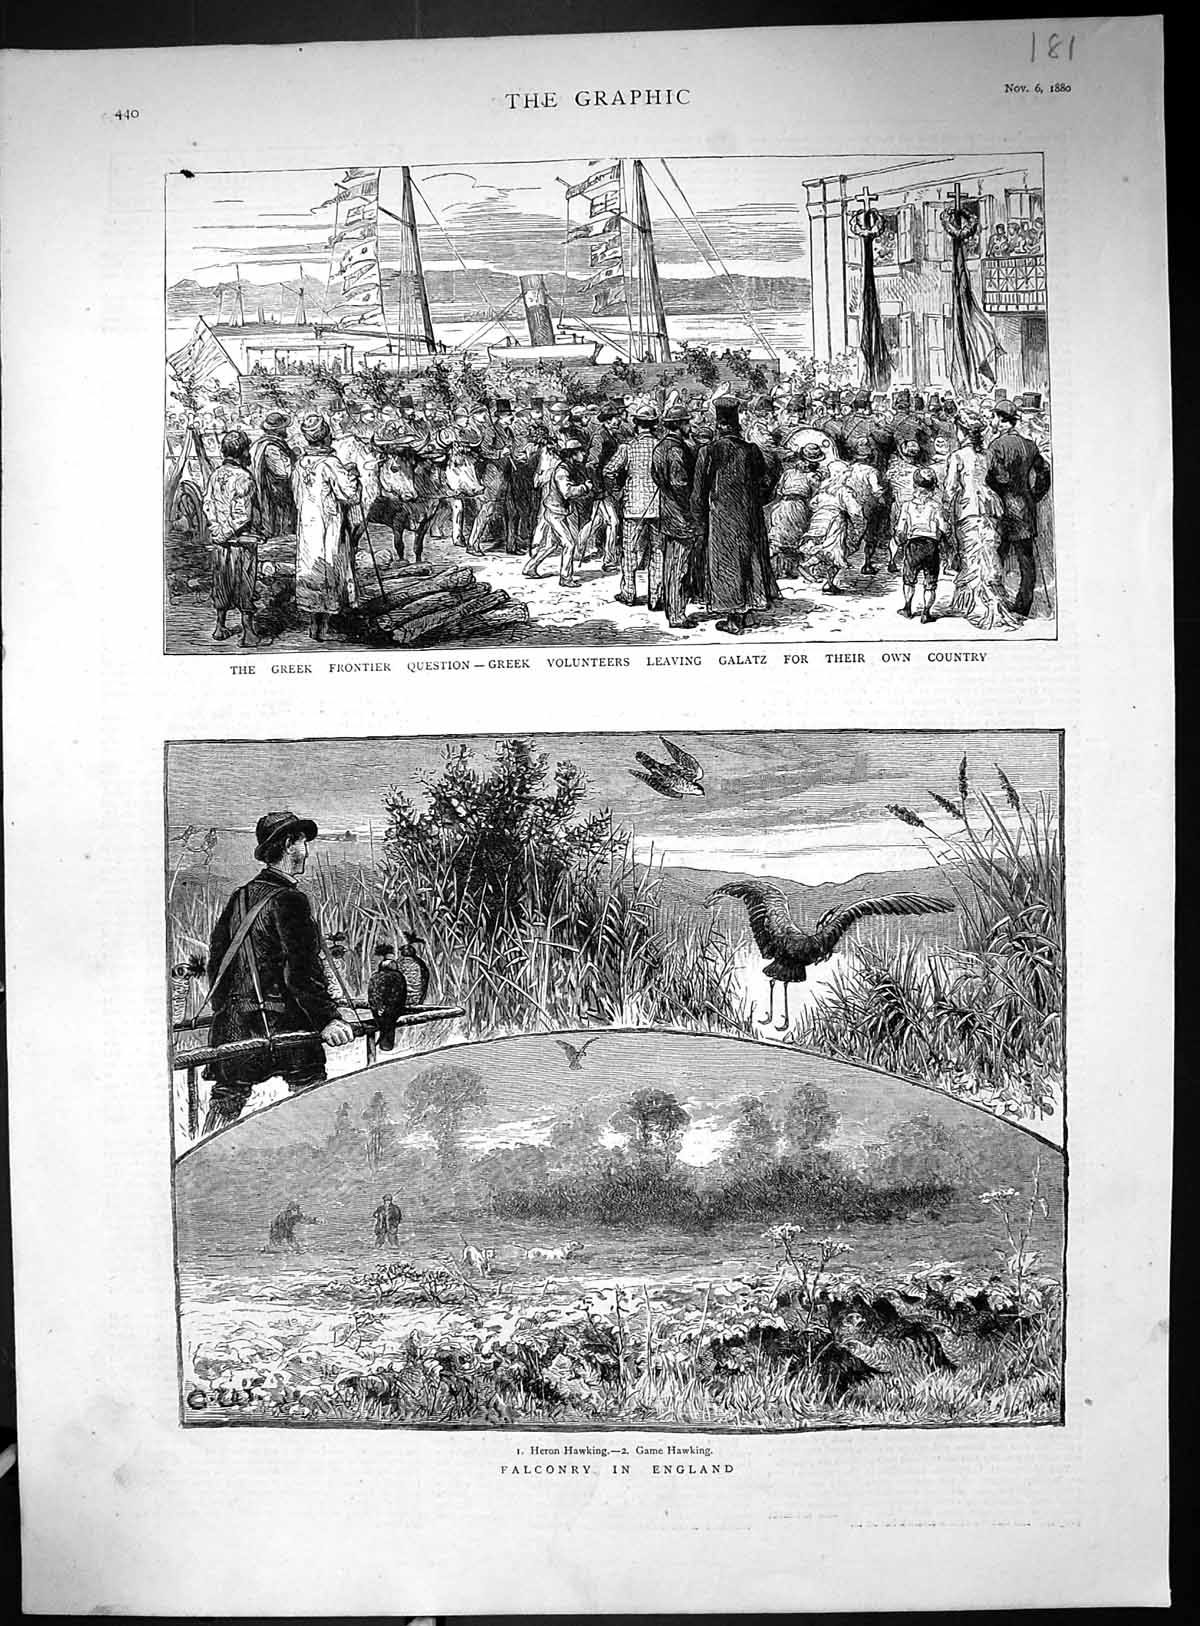 [Print 1880 Falconry England Heron Hawking Birds Greek Volunteers Galatz 181J516 Old Original]